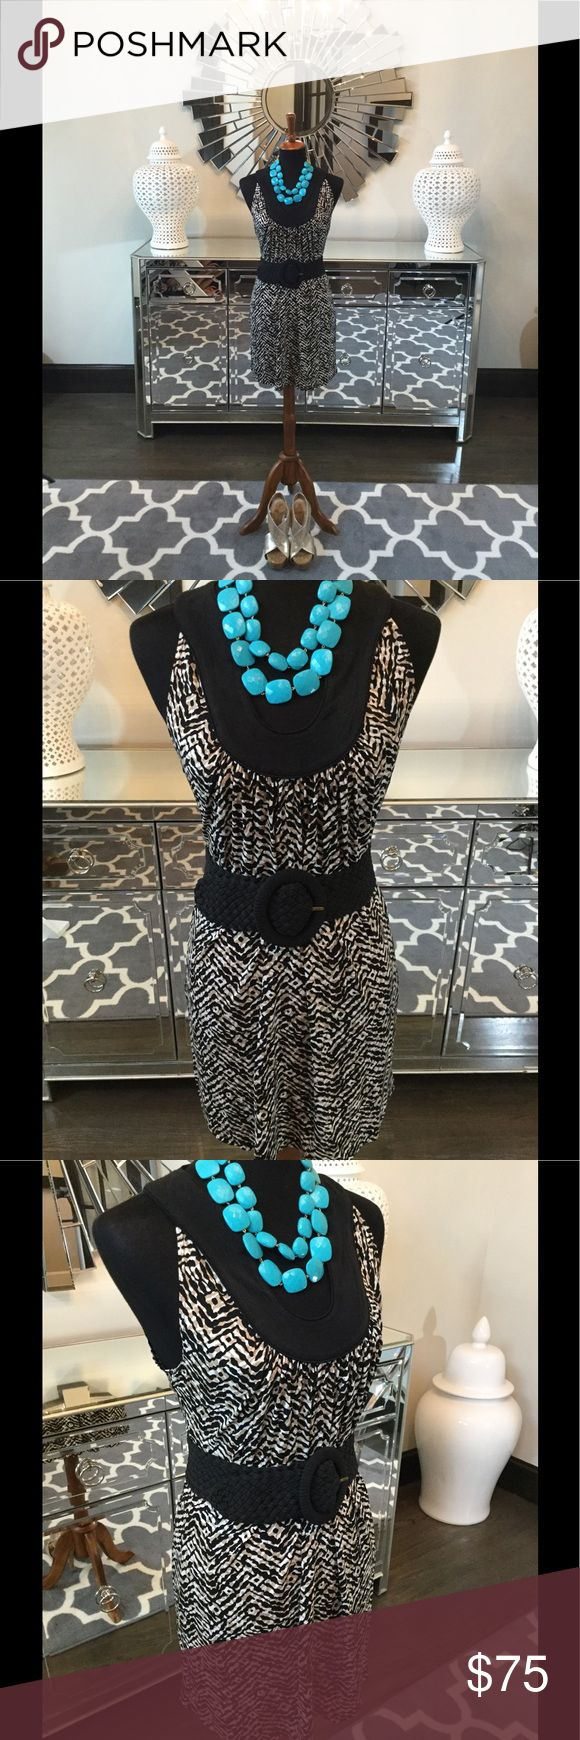 Laundry Mini Dress Stunning Laundry dress. Gorgeous black, white and brown animal print fabric. Drapes and flows effortlessly. Detailed neckline. Pair with your favorite belt and wedges for the perfect summer look! laundry Dresses Mini